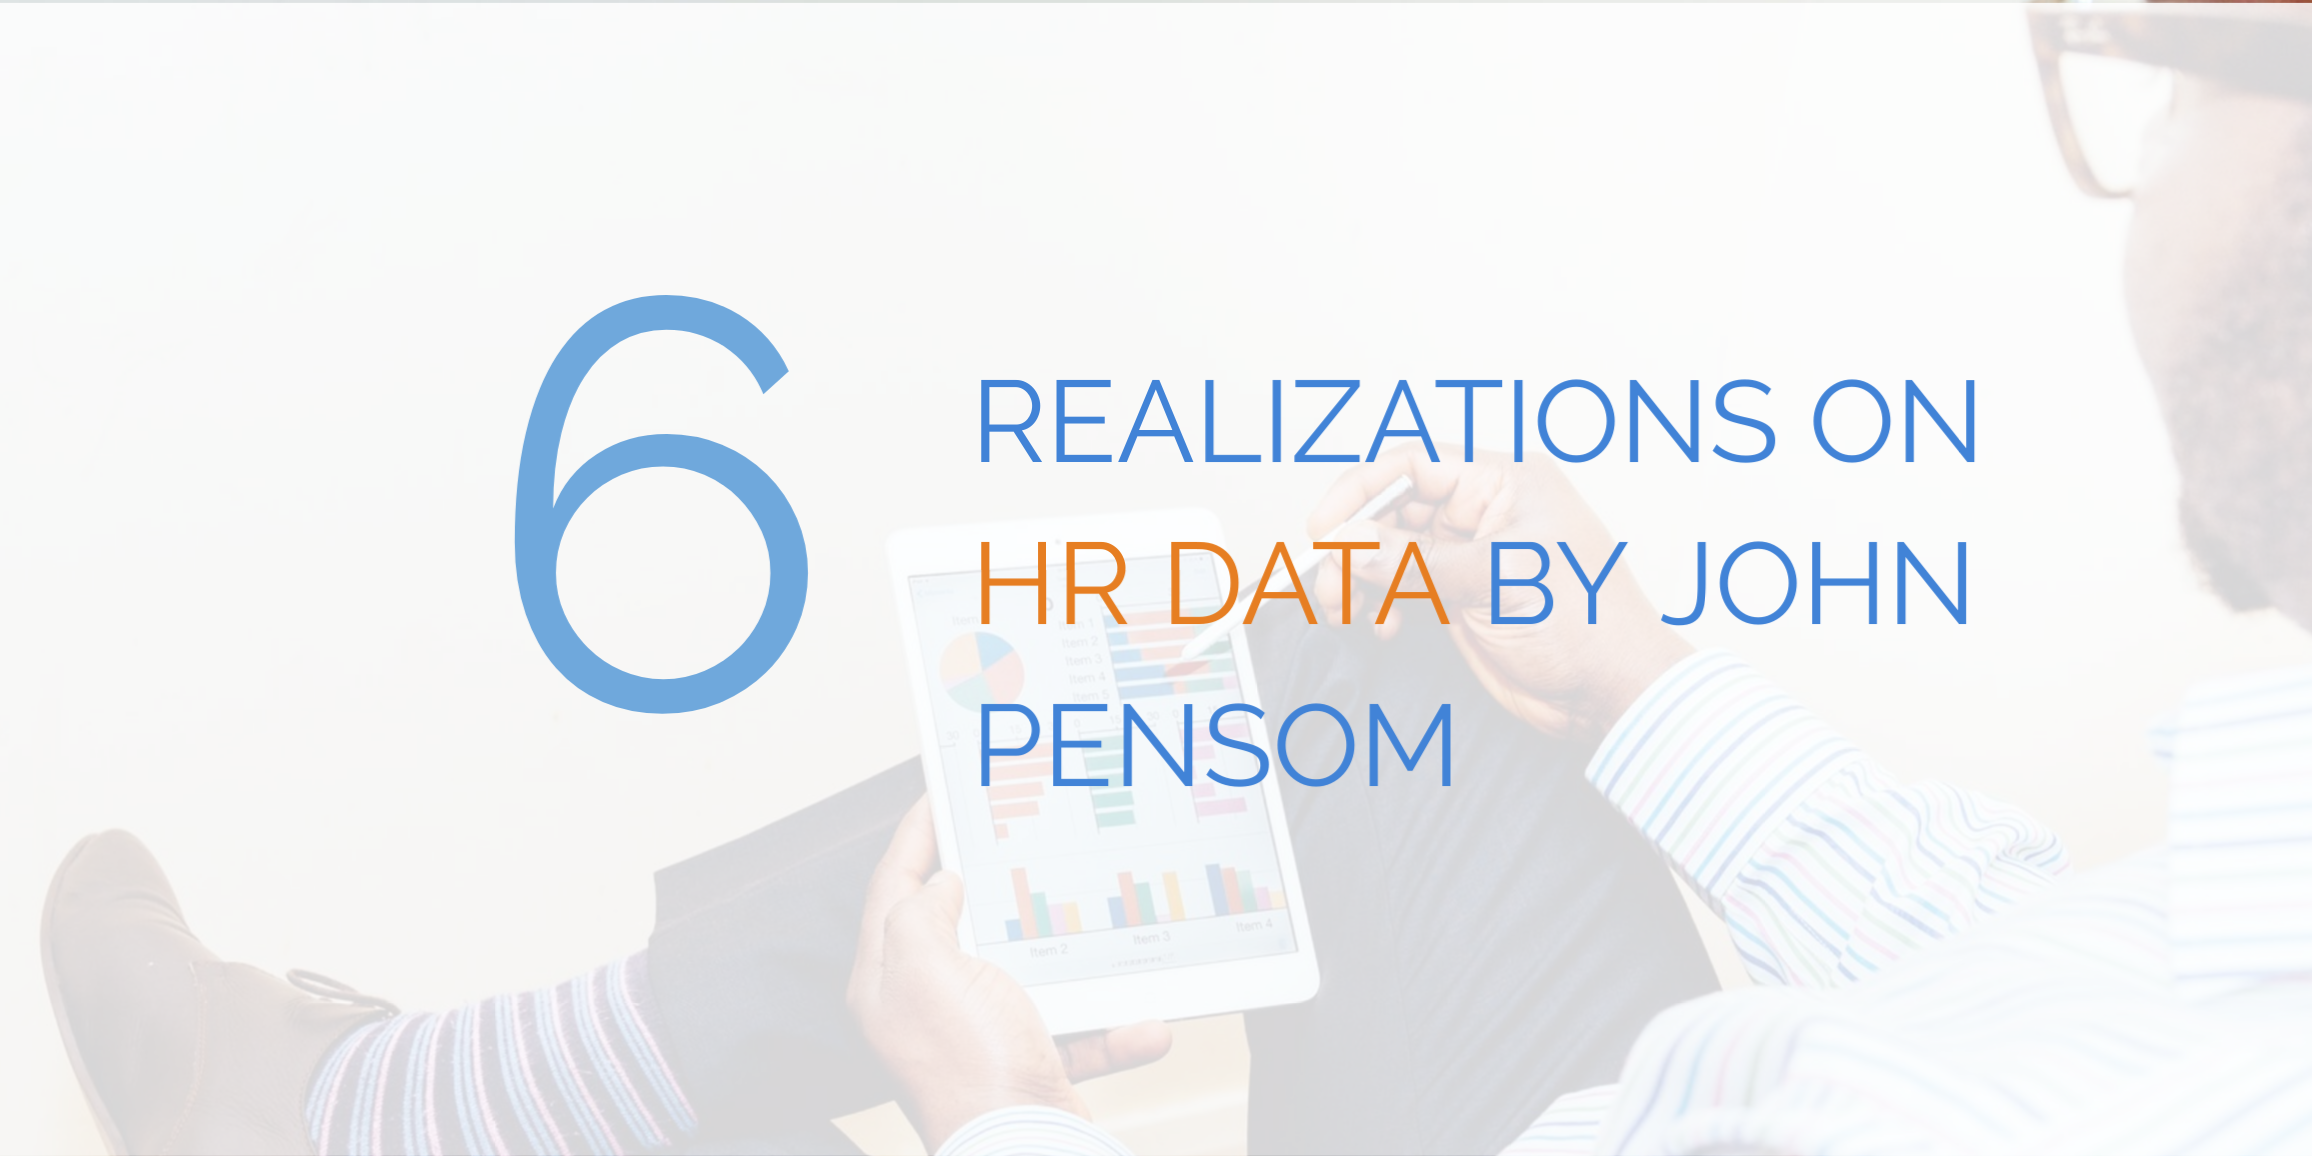 6 Realizations on HR Data